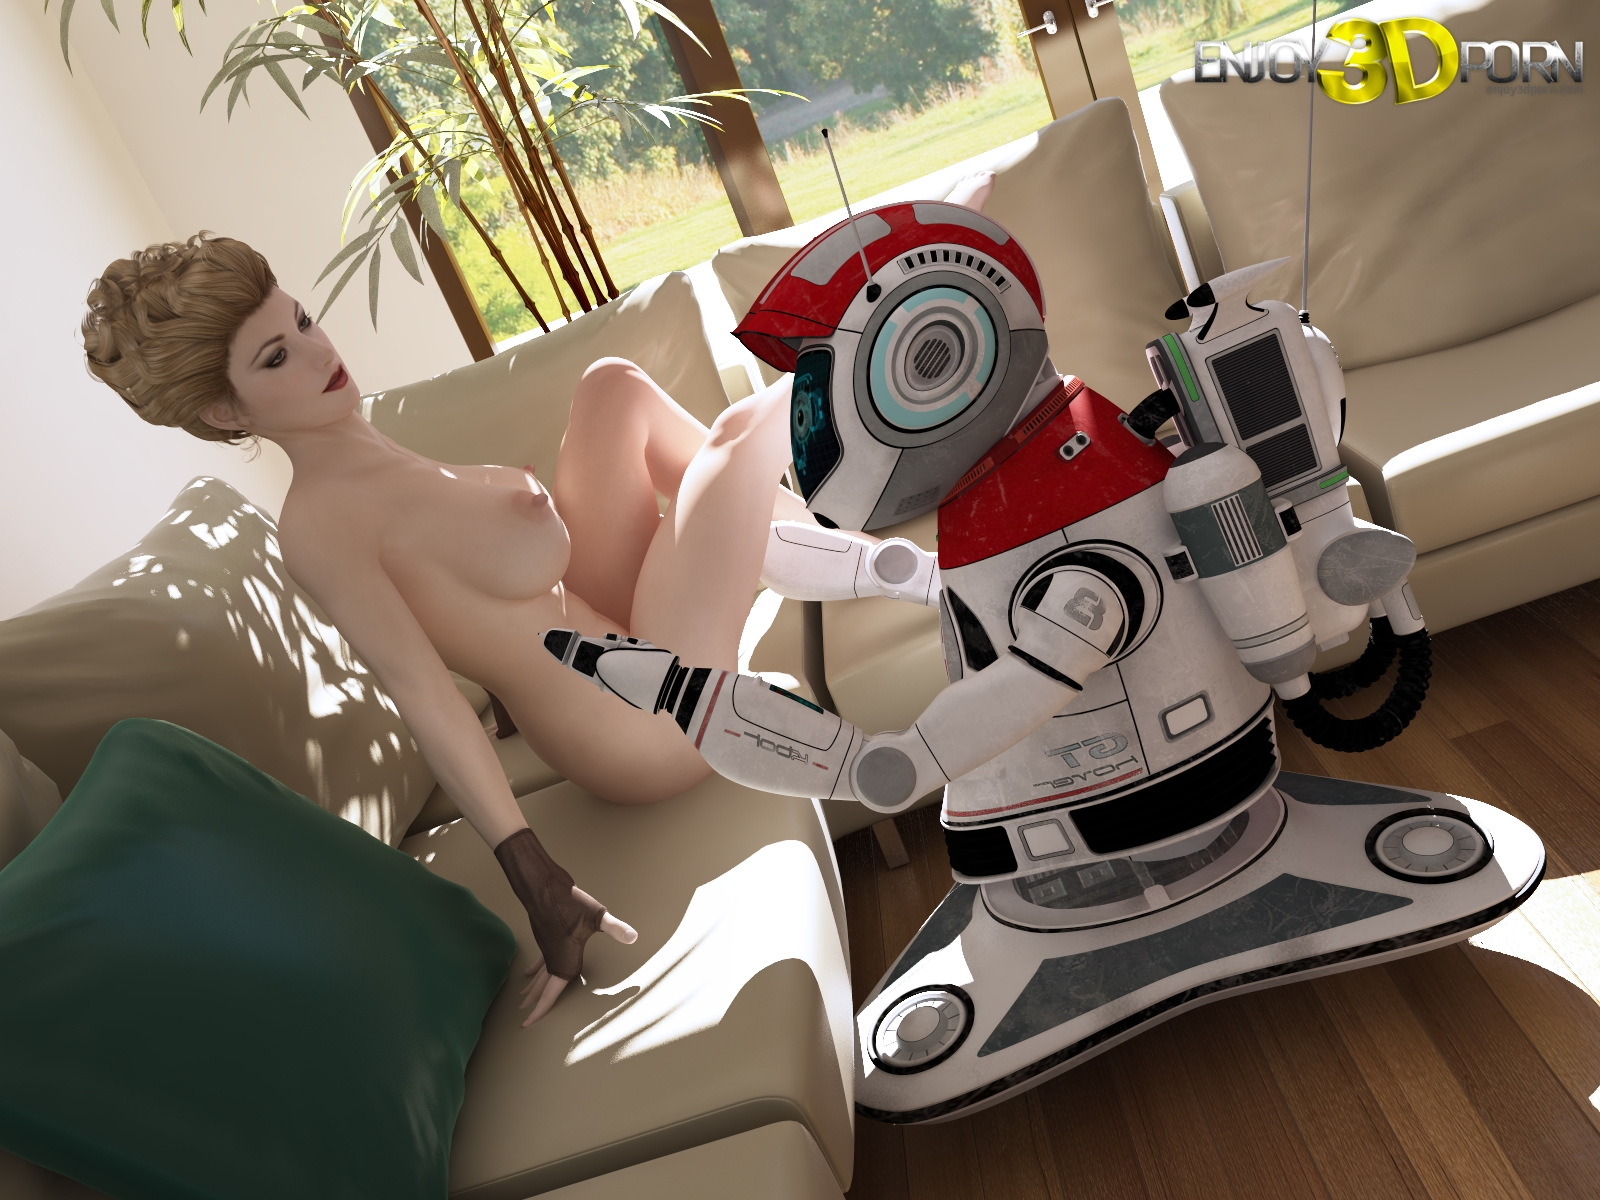 There's no evidence having sex with robots is healthy, report says